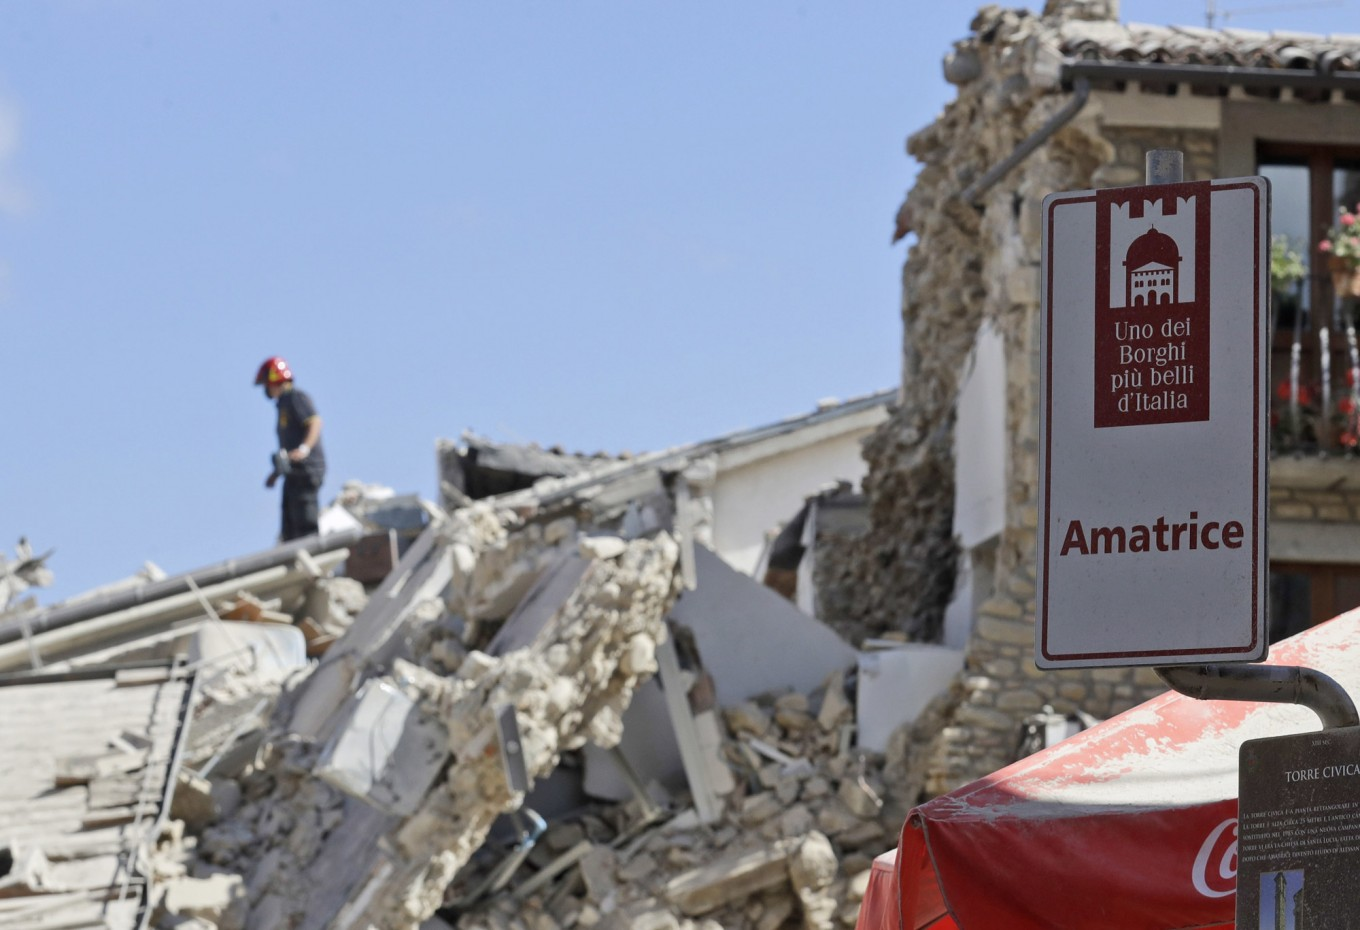 """Rescuers work in Amatrice, central Italy, Wednesday, Aug. 24, 2016, where a magnitude 6 quake struck at 3:36 a.m. [0136 GMT] and was felt across a broad swath of central Italy, including Rome where residents of the capital felt a long swaying followed by aftershocks. Turistic sign at right reads in Italian : """"Amatrice, one of the most beautiful hamlets in Italy"""". AP Photo/Alessandra Tarantino"""